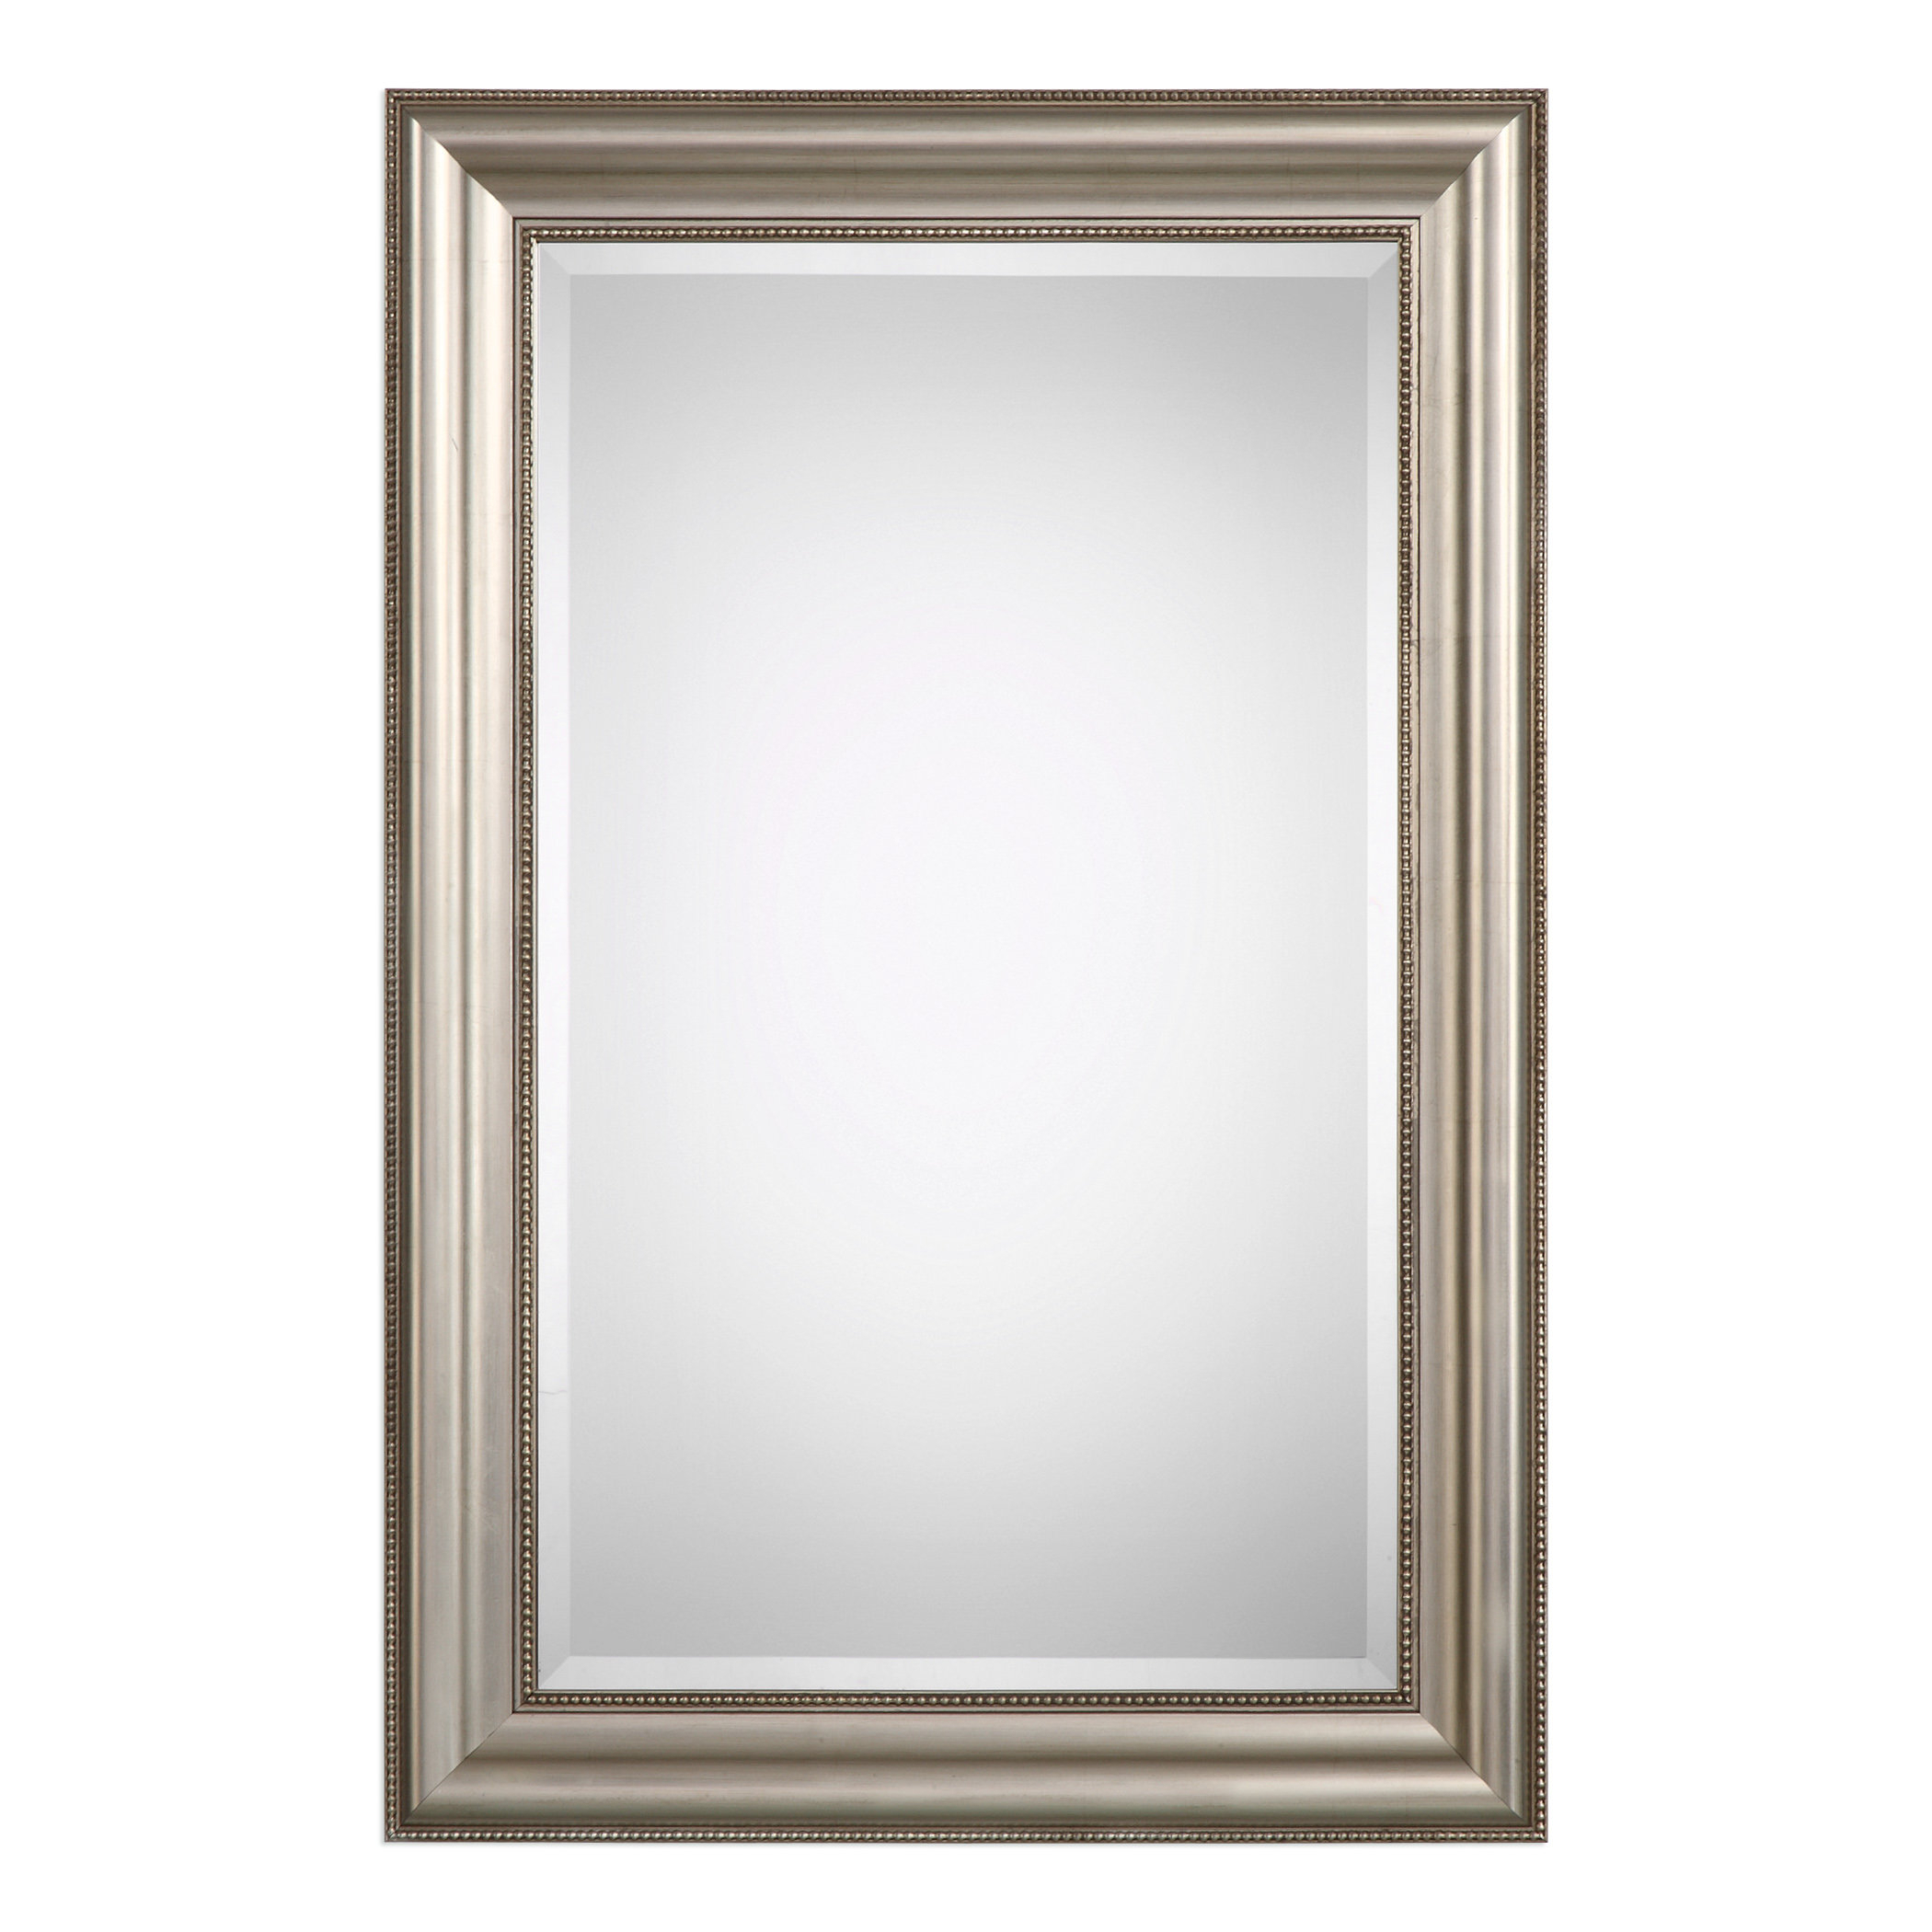 Farmhouse Mirrors | Birch Lane For Beaded Accent Wall Mirrors (View 10 of 30)